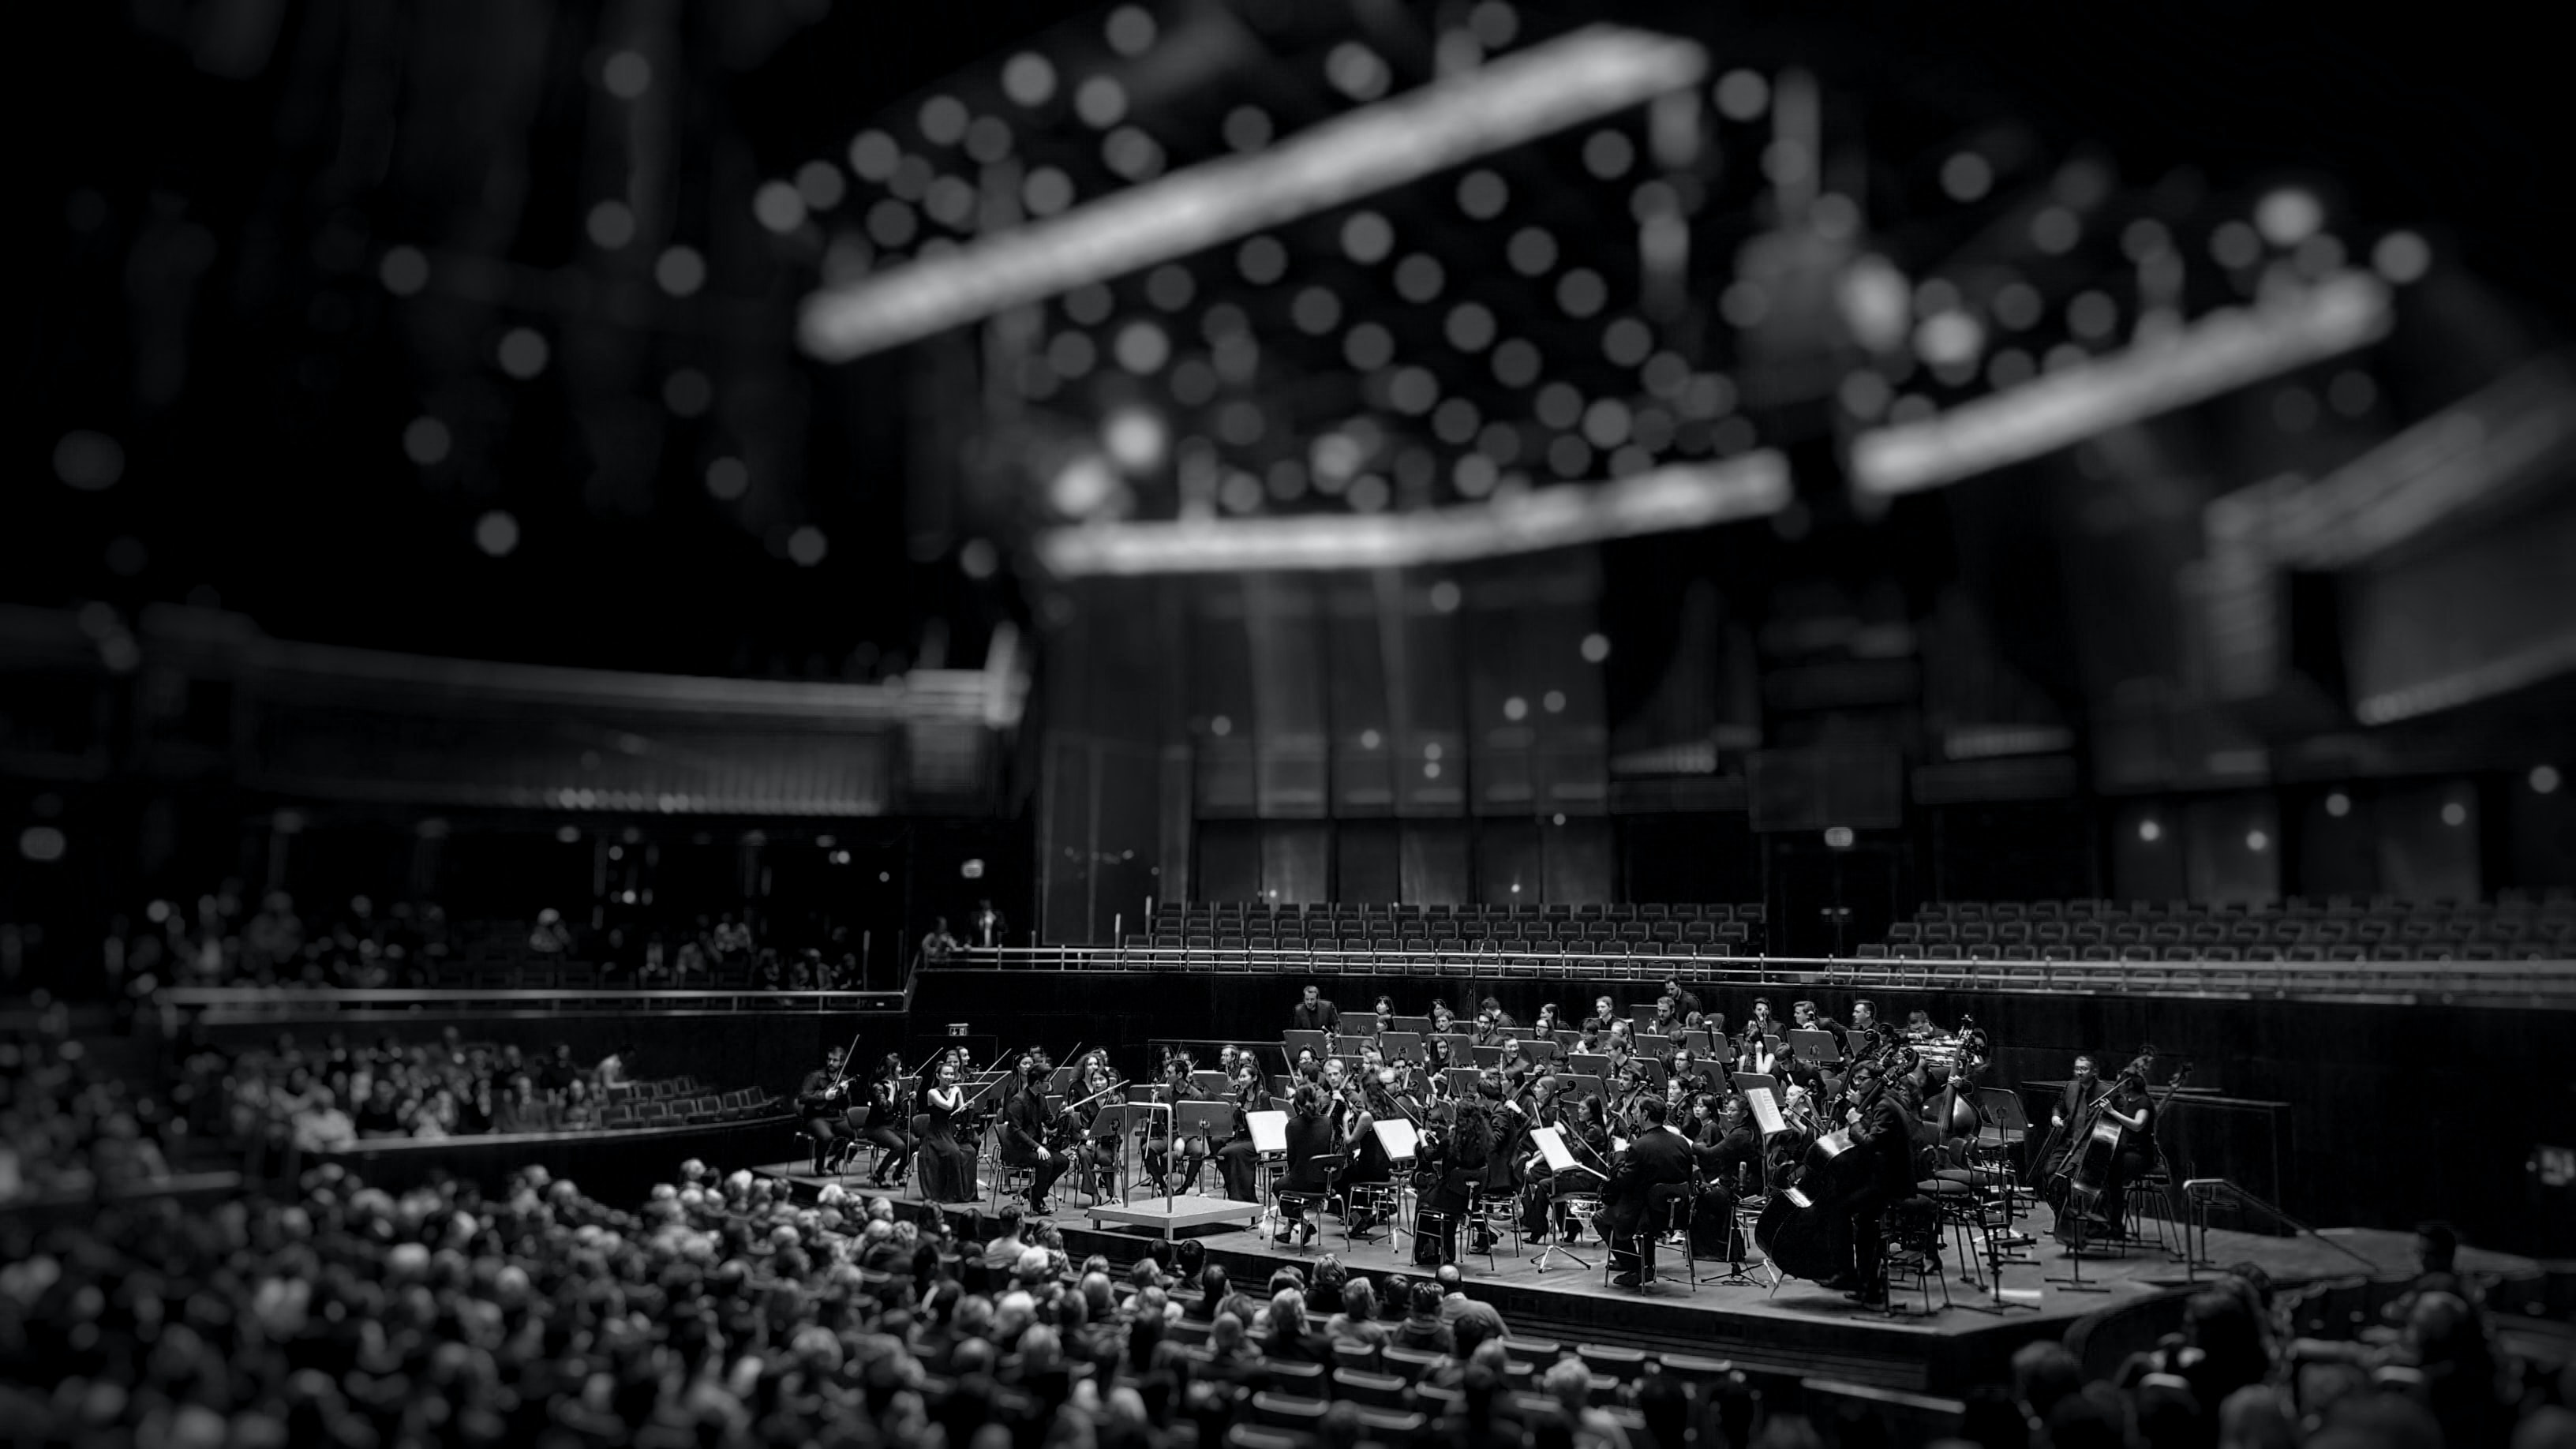 A black-and-white shot of an orchestra performing on stage in a concert hall